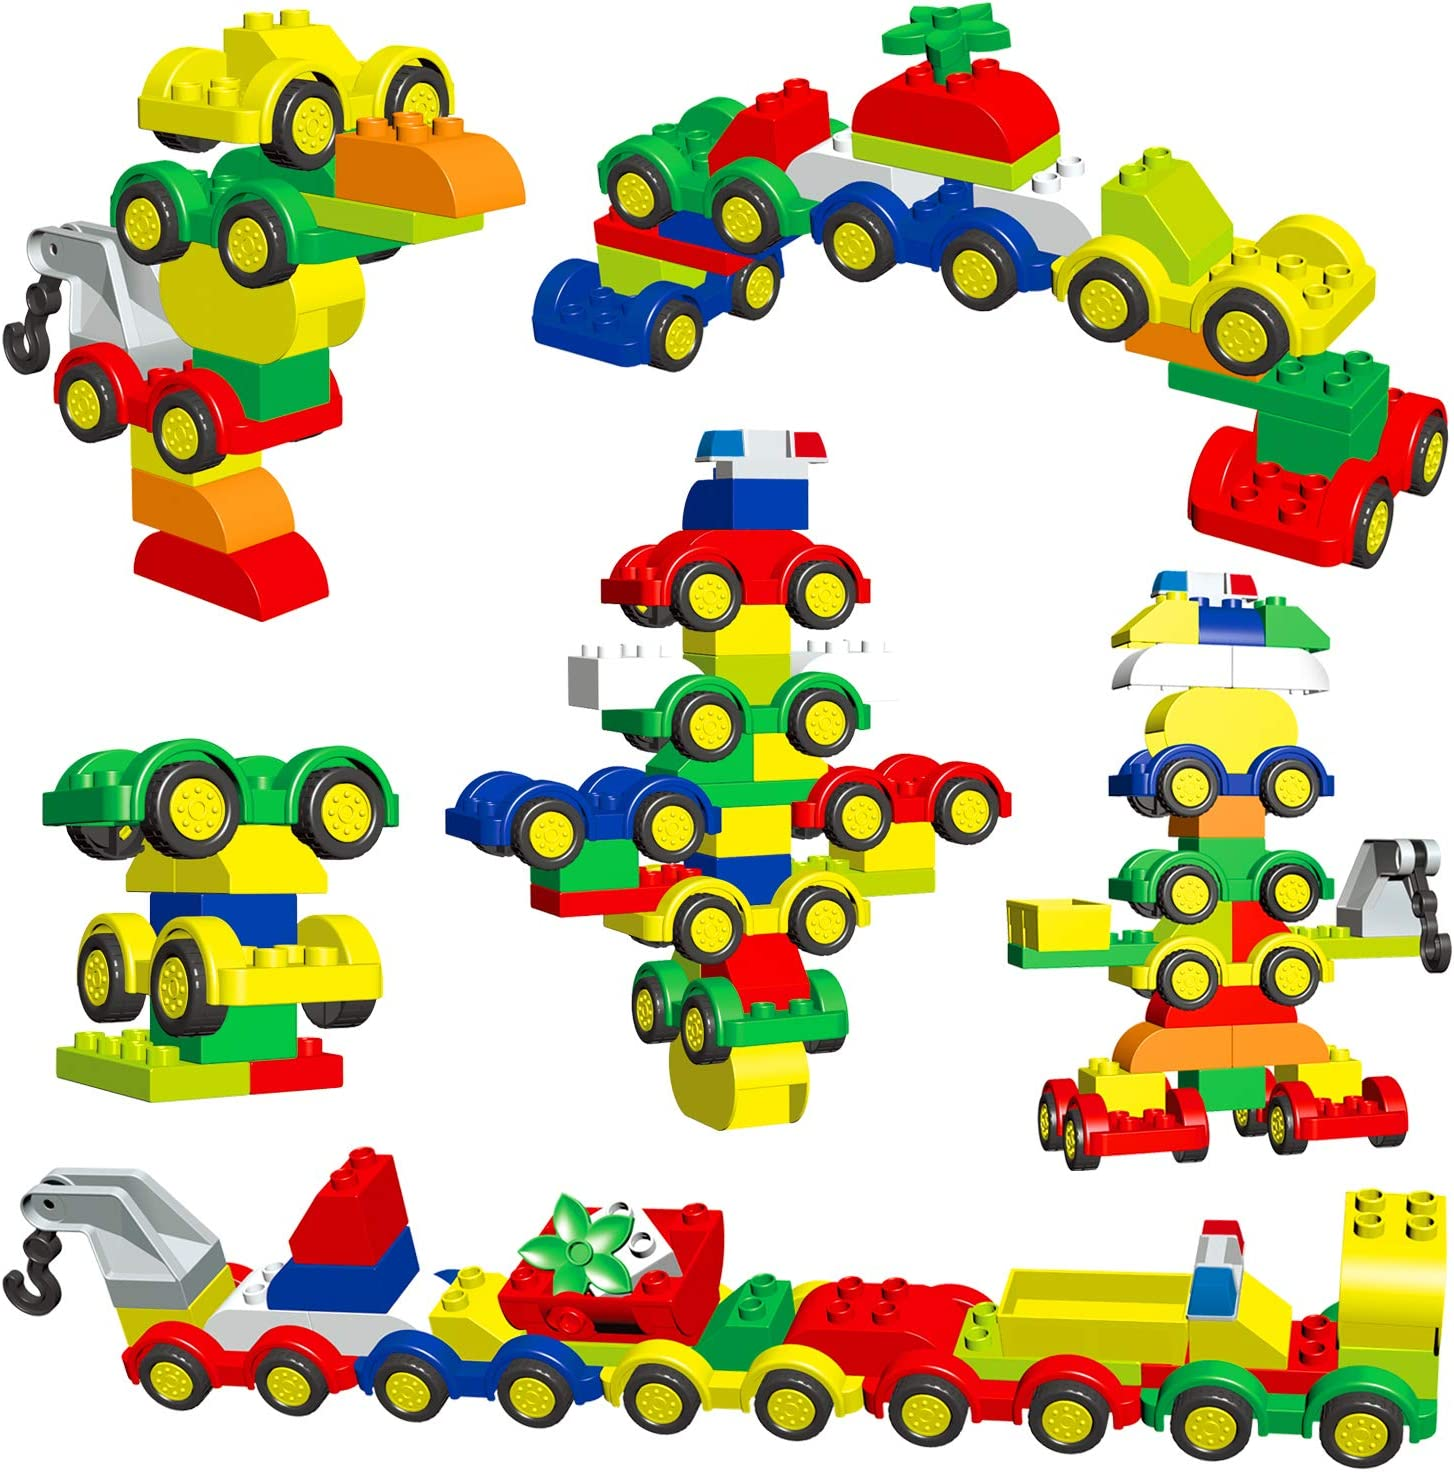 STEM Gift Toys Bricks for Toddlers 1-3 Boys Girls 48 Pieces Building Bricks Building Toy Cars Set with 8 Mini Vehicles Early Educational Set with Storage Box Large Building Blocks for Toddlers